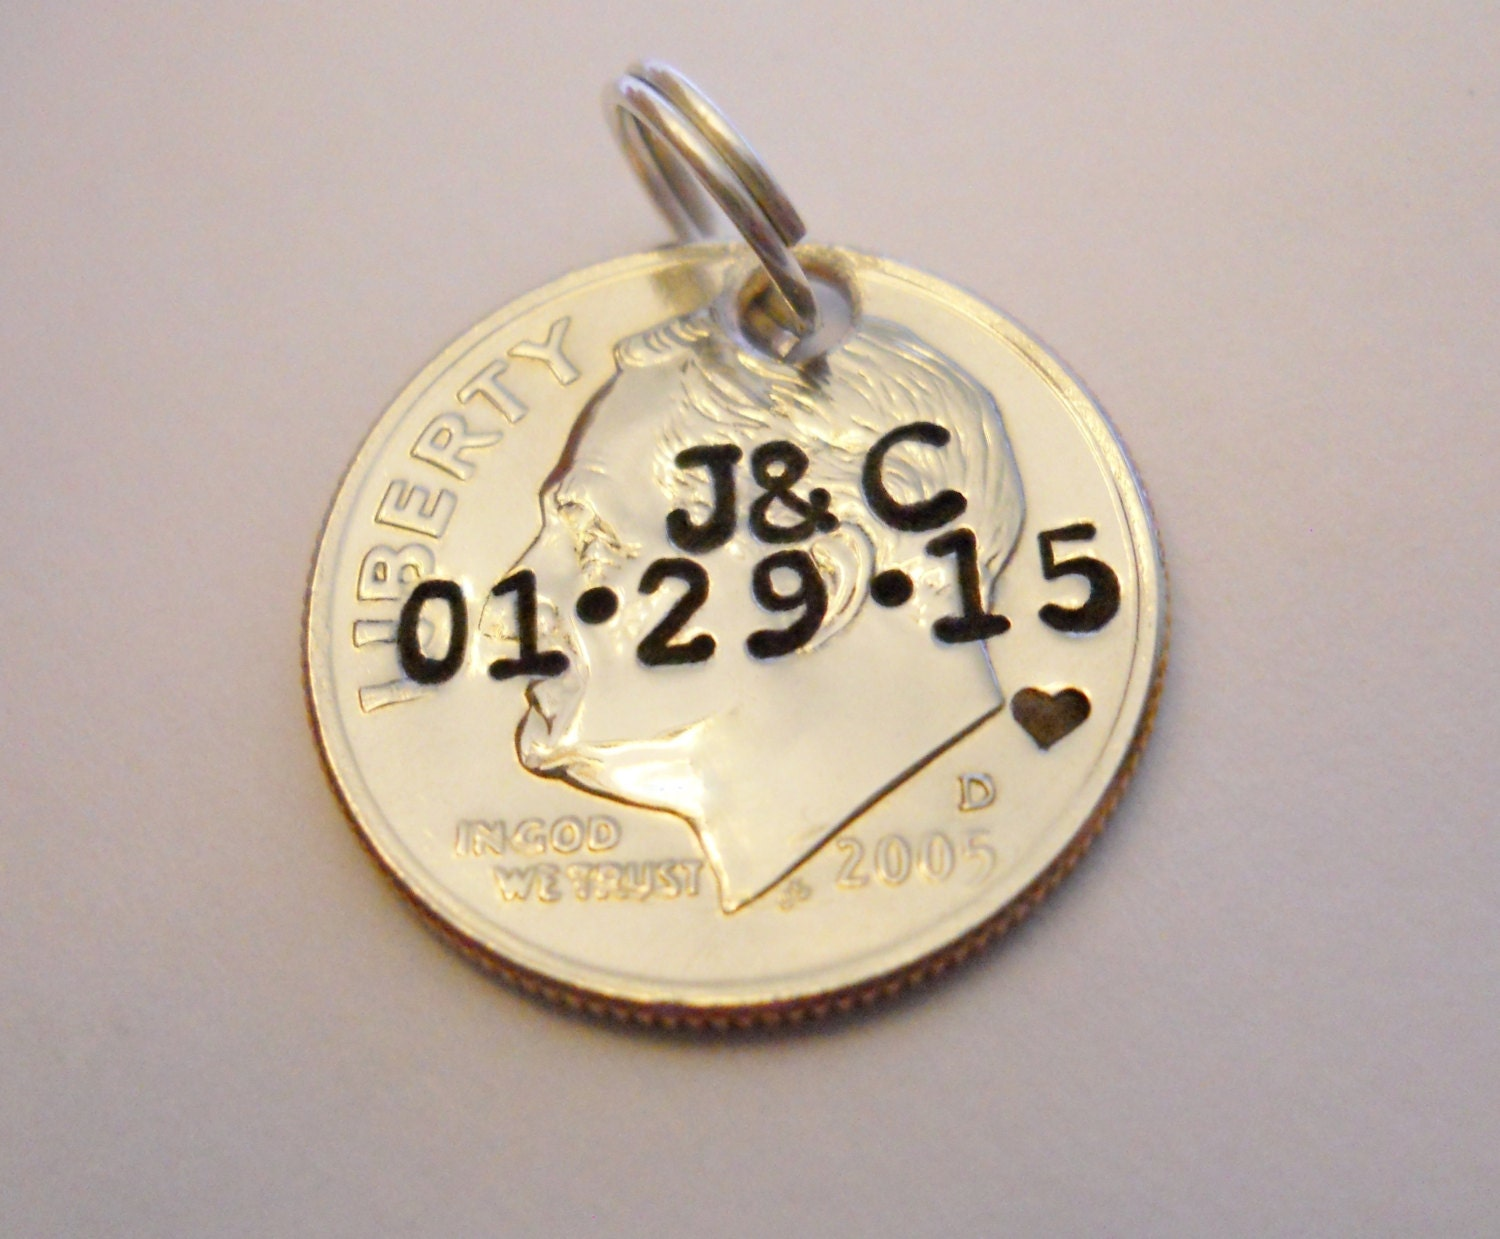 10th Wedding Anniversary Gift For Him: 10th Anniversary Gift: Custom Pendant/Keychain Charm; 10